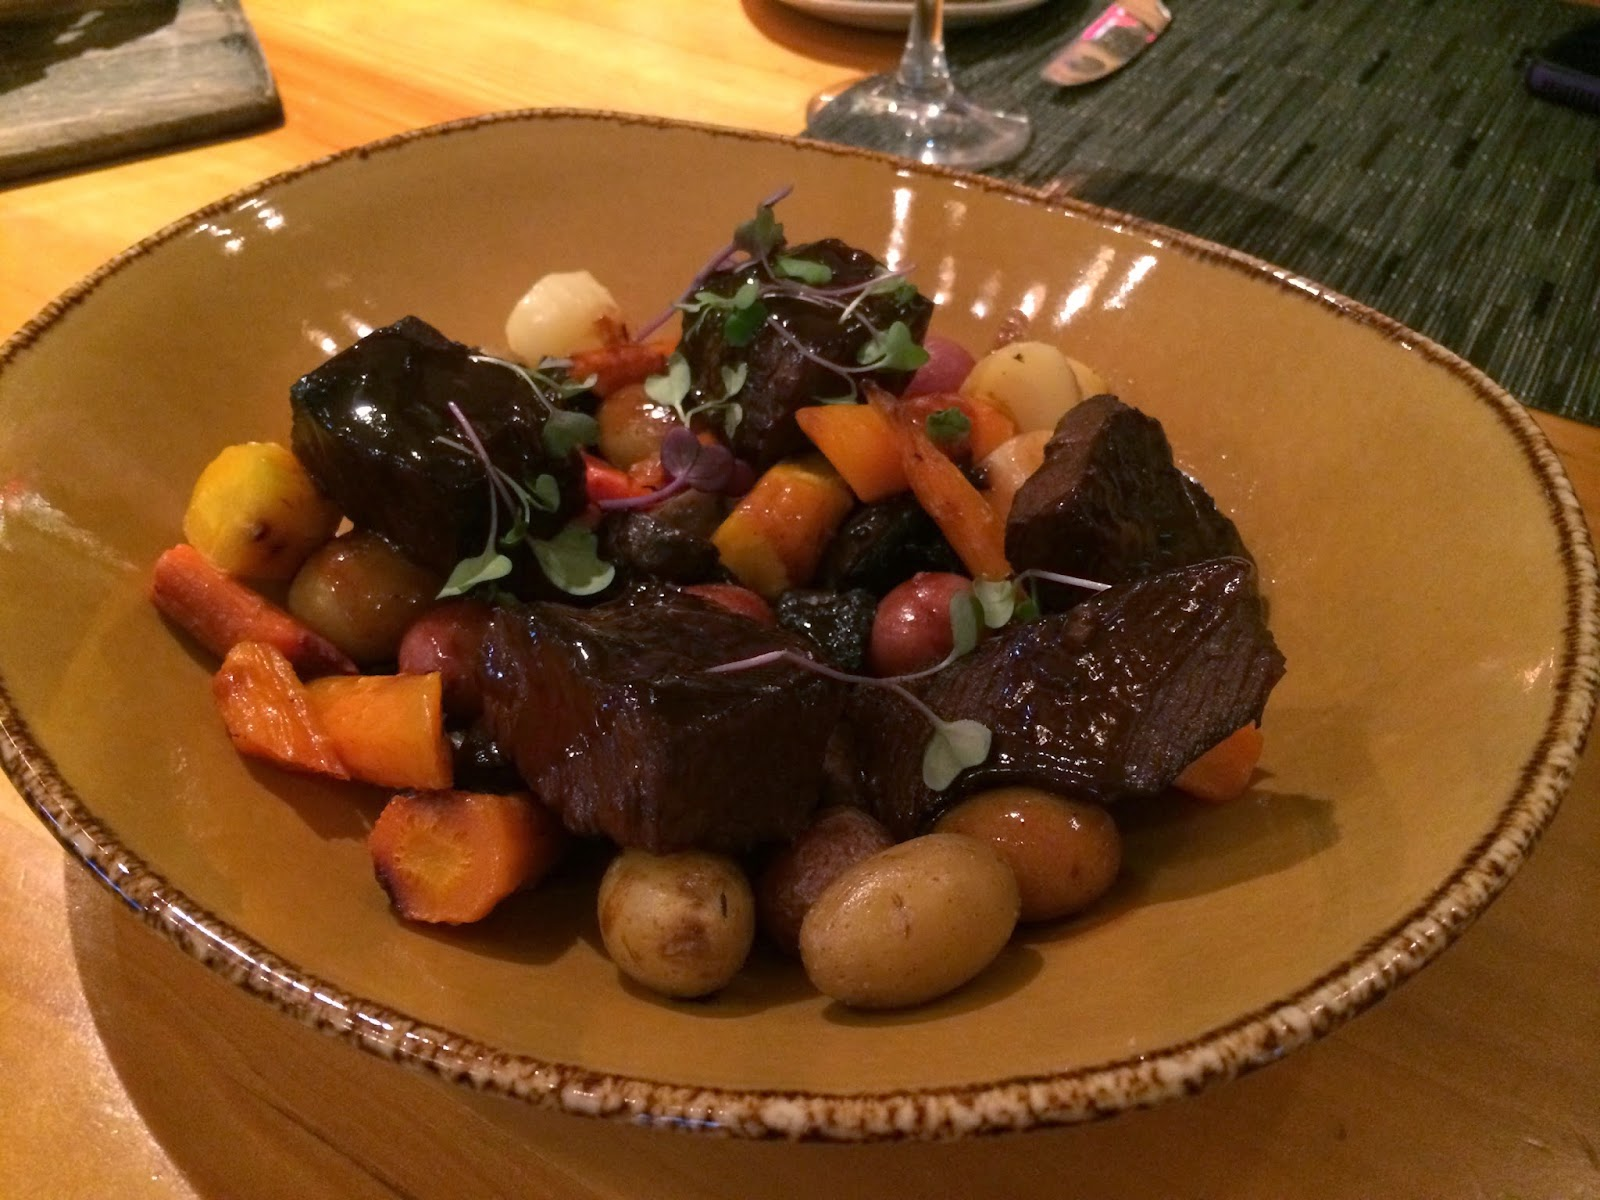 Pierrot Gourtmet - Short Rib - Bastille Day